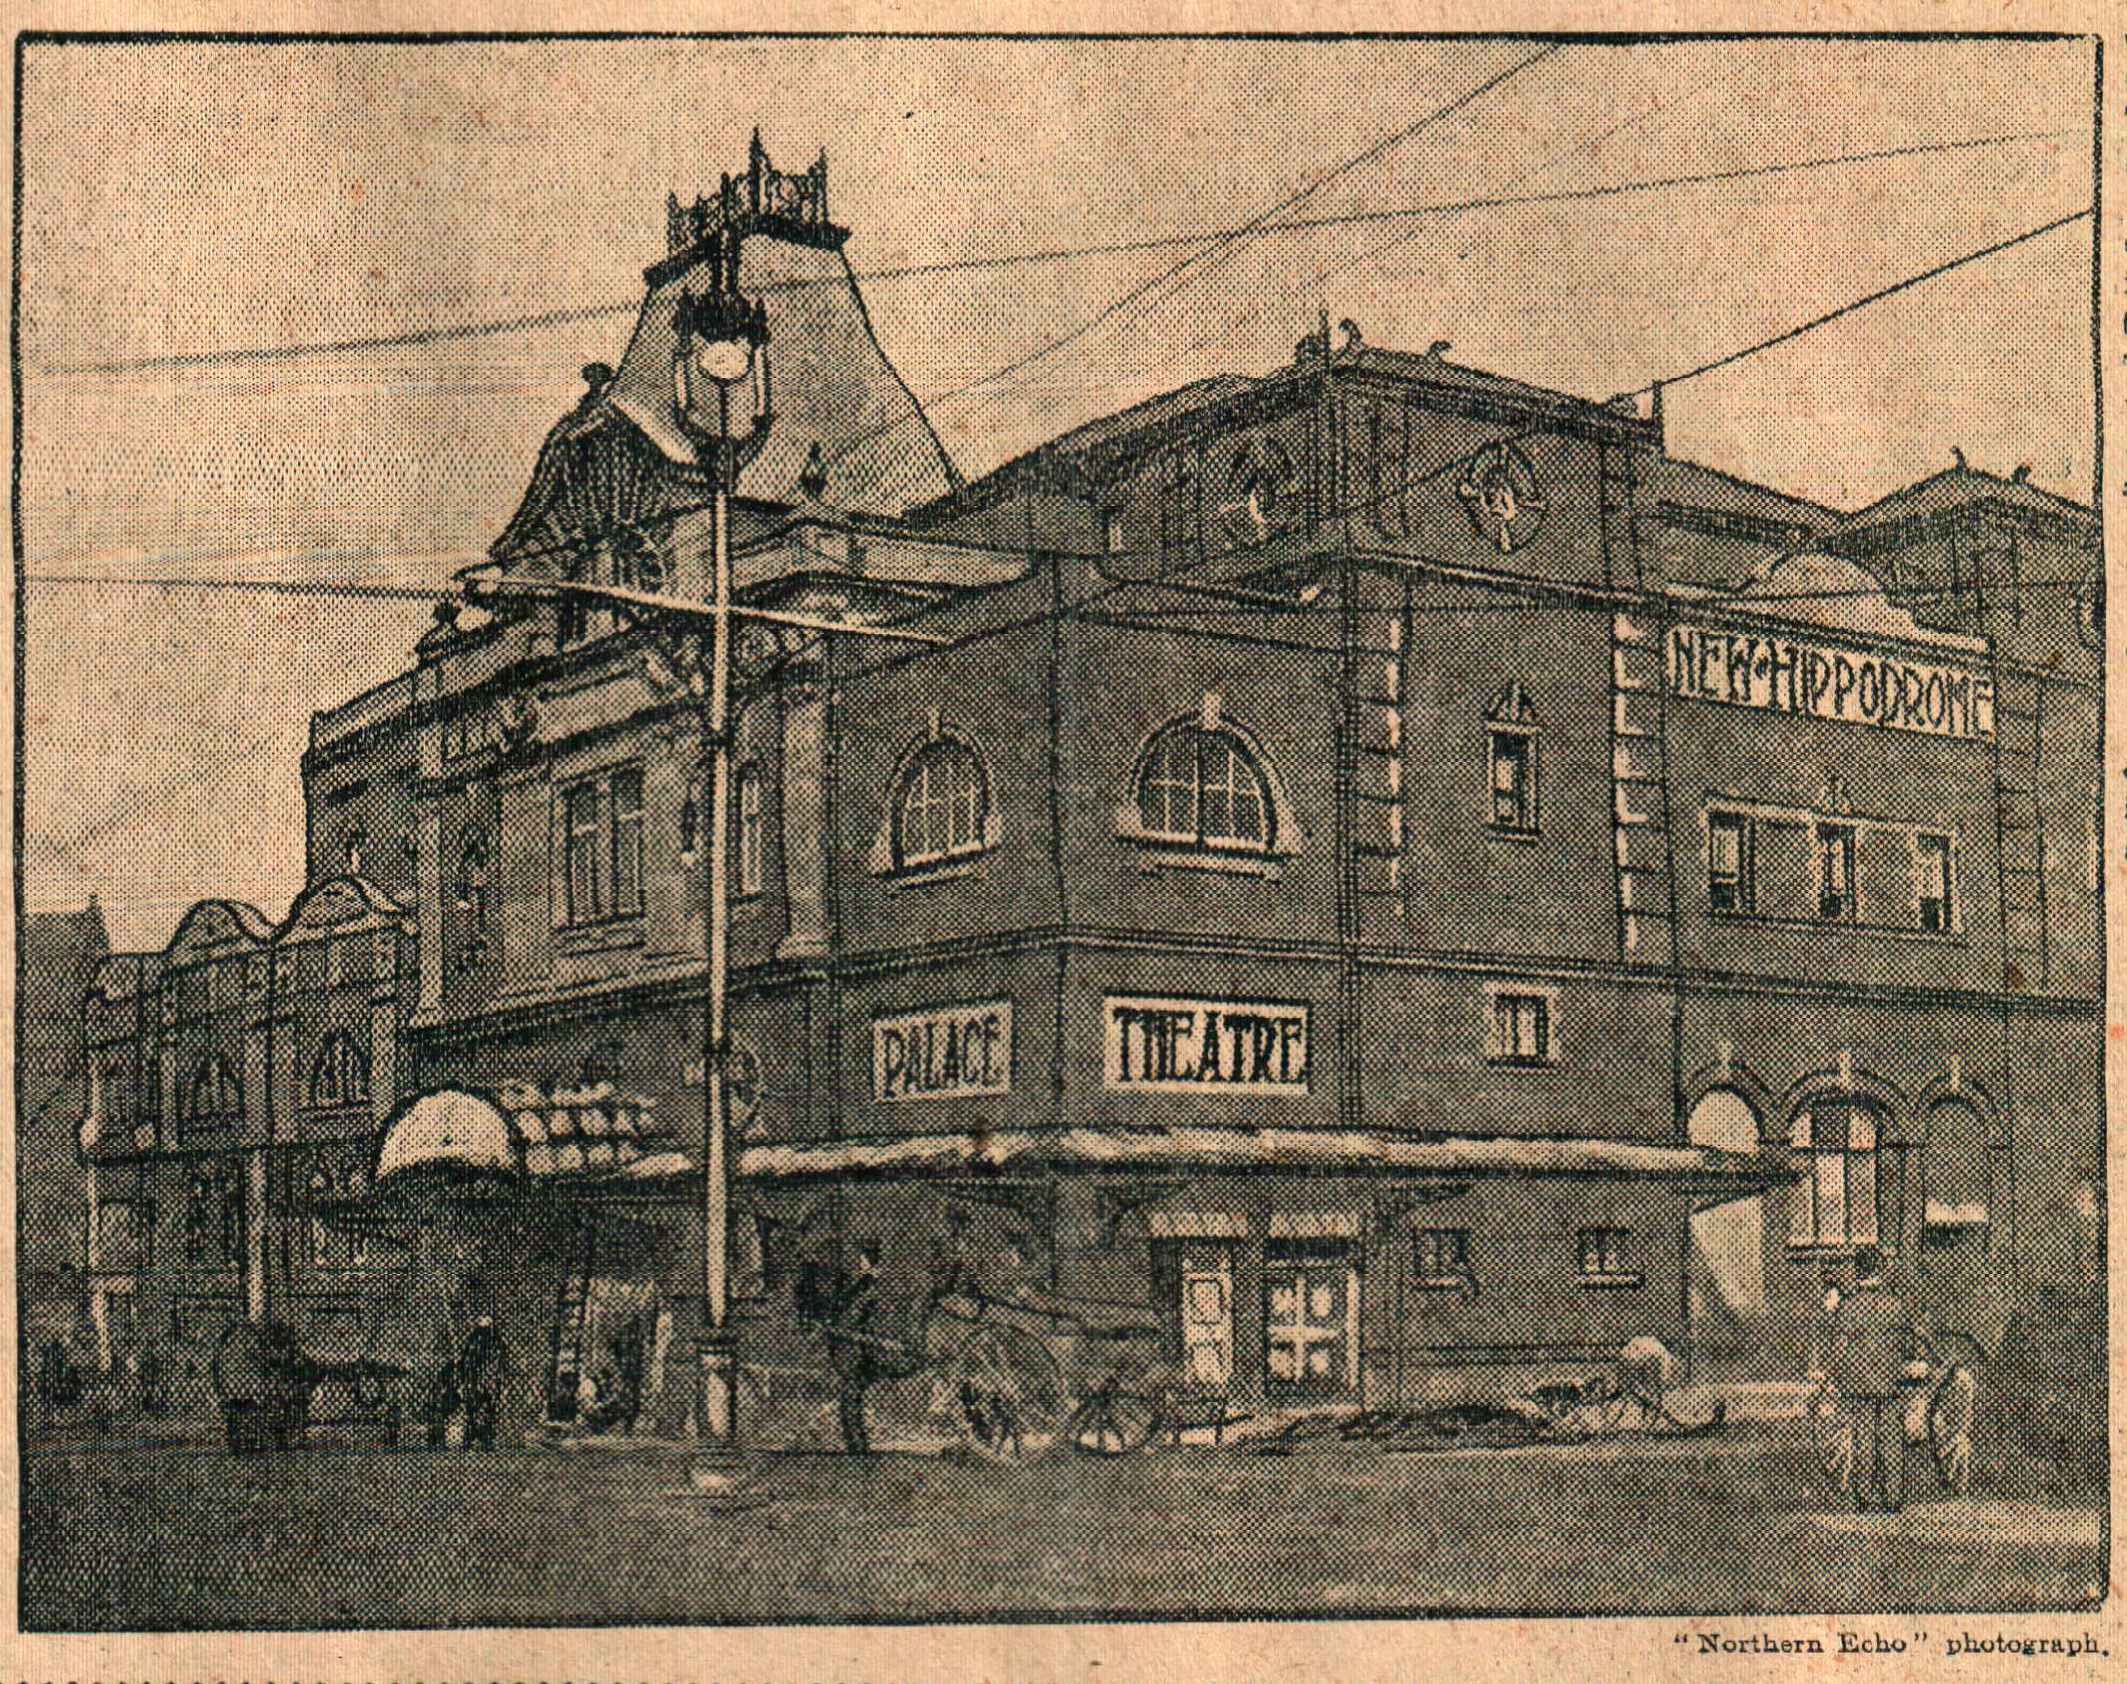 The finishing touches being applied to the Darlington Hippodrome in late August 1907